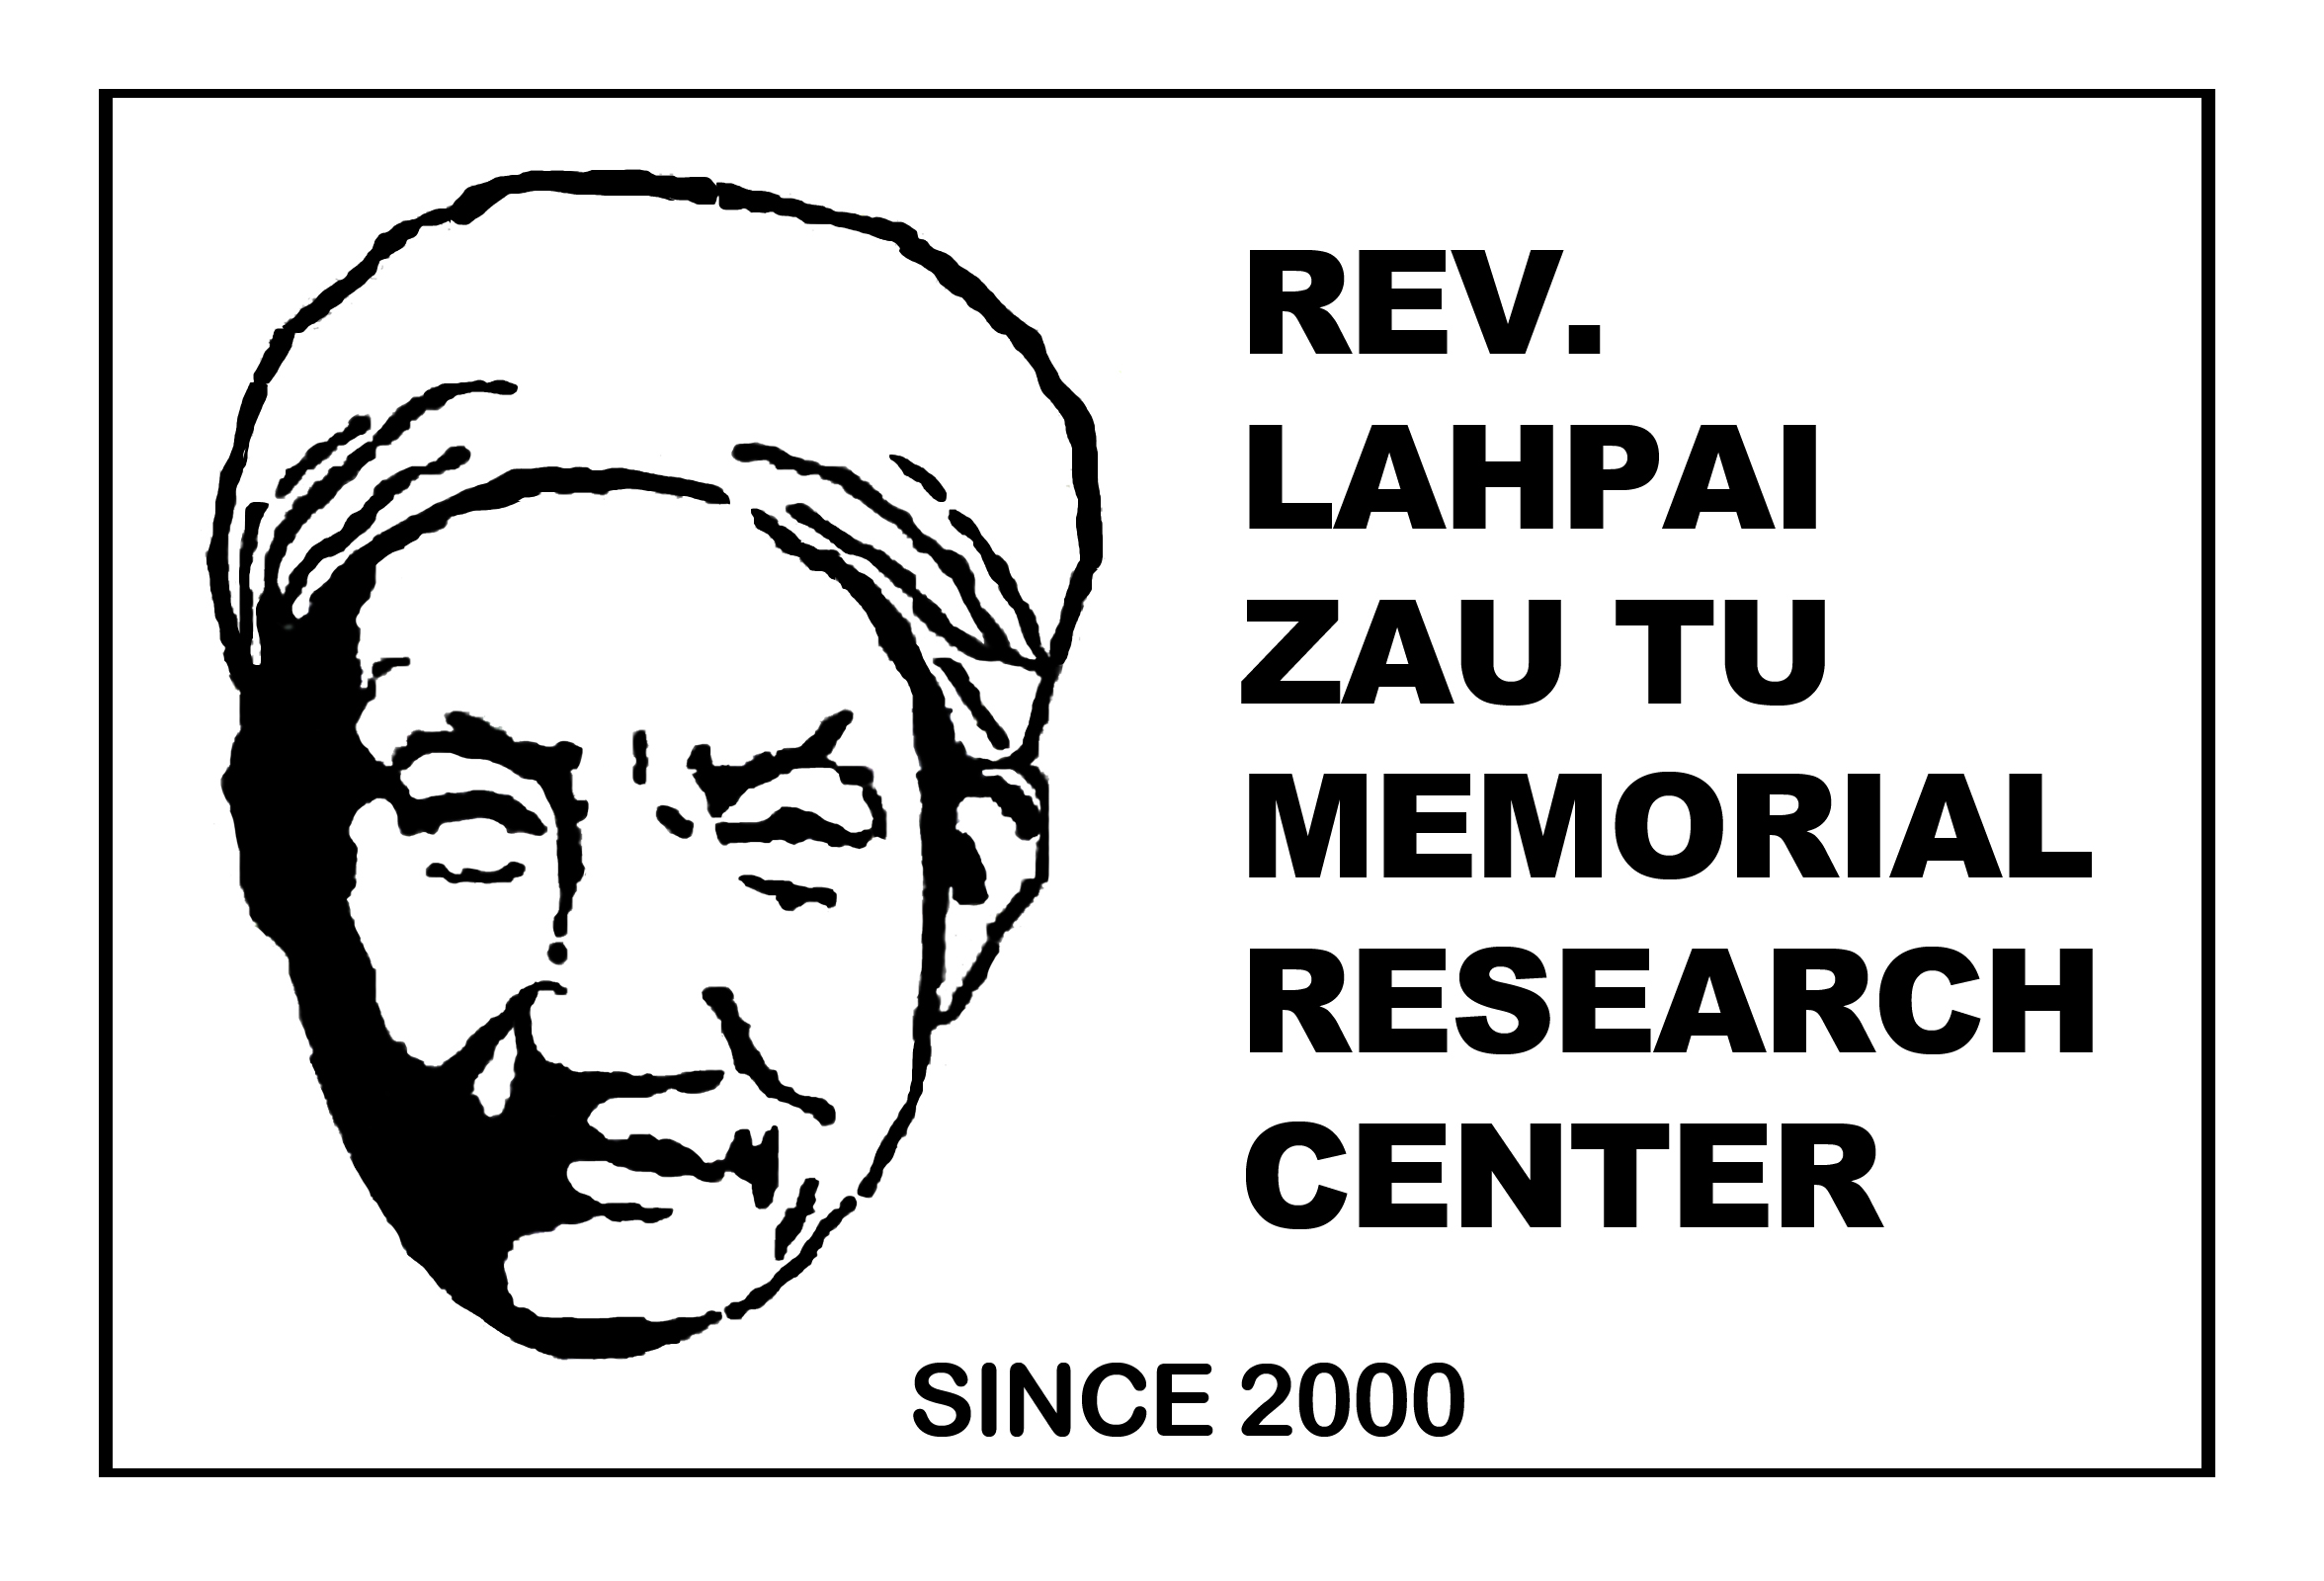 Rev Lahpai Zau Tu Memorial Research center white